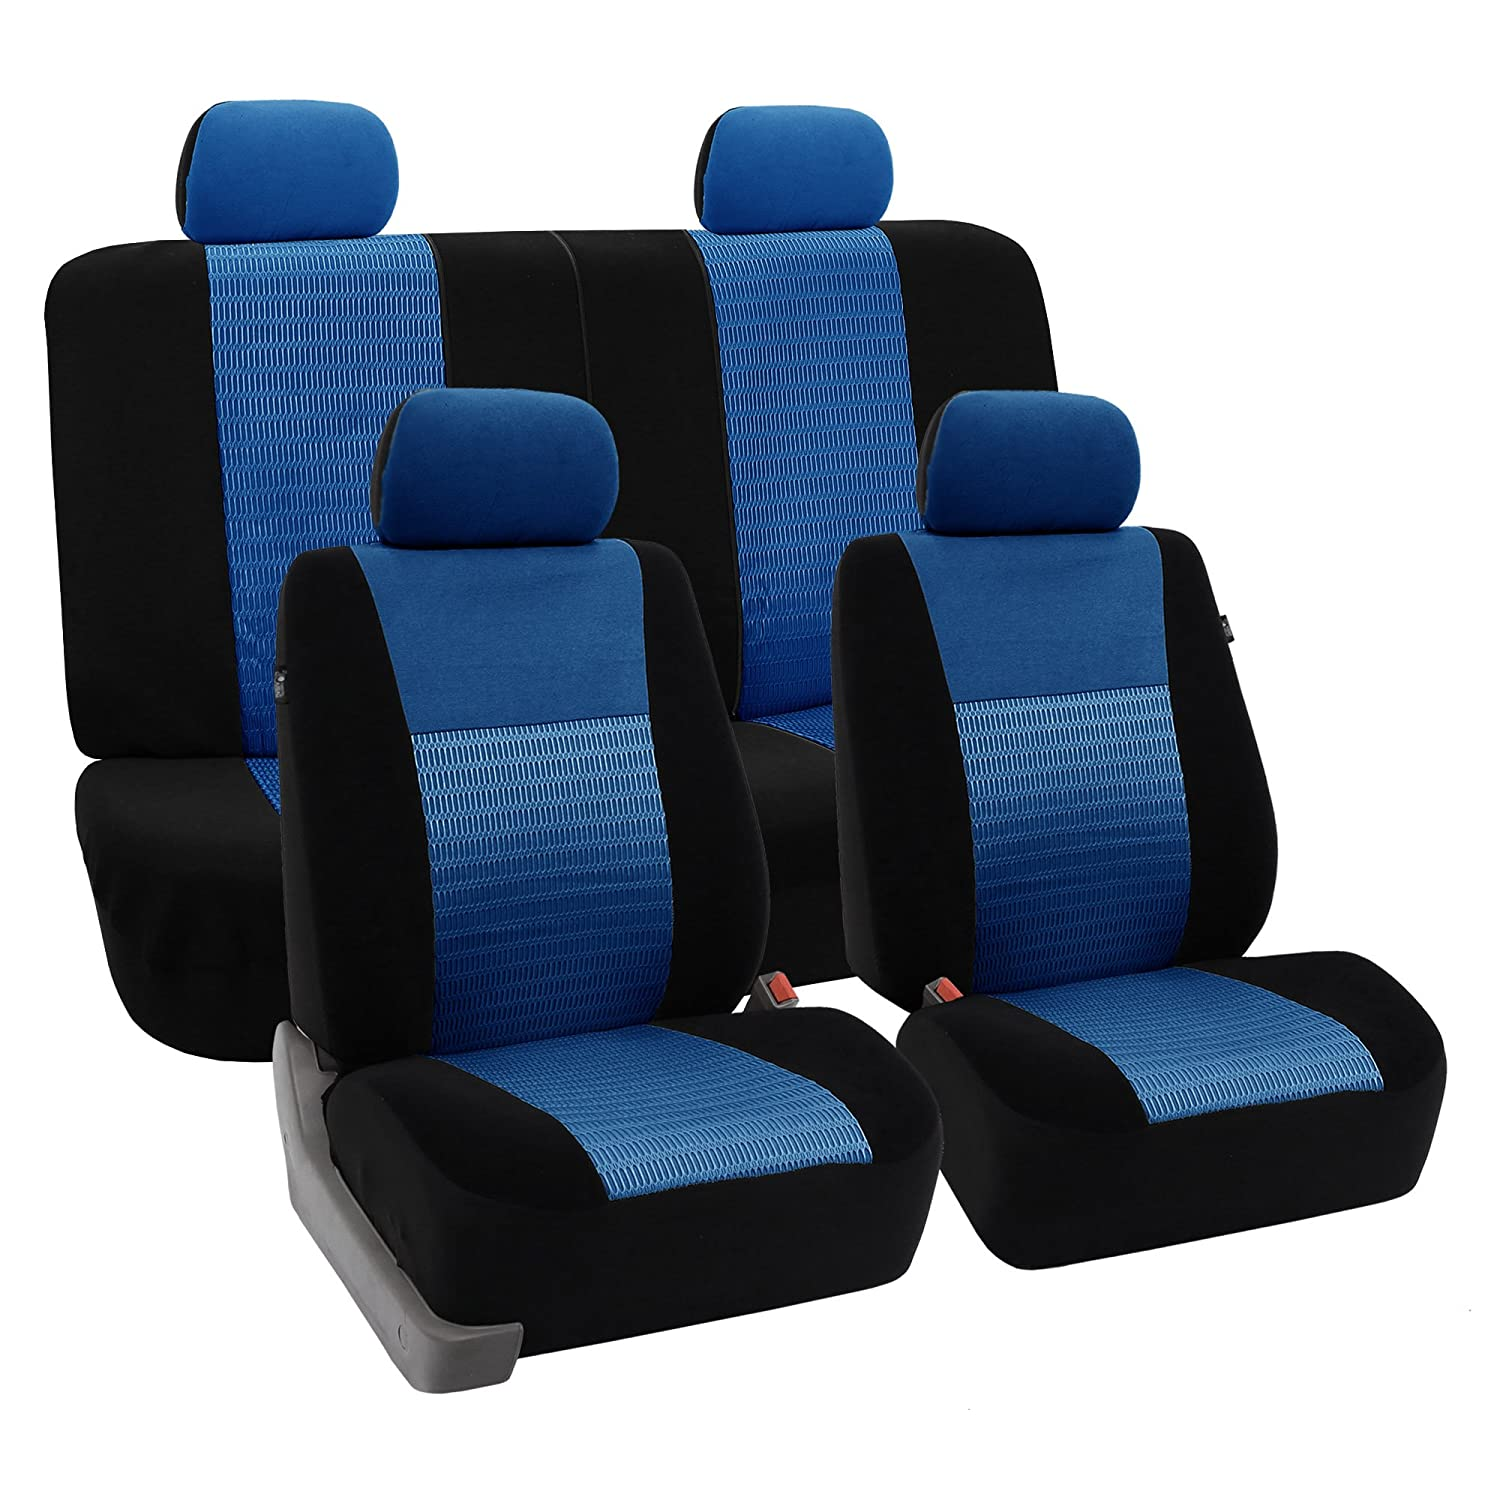 FH FB060114 Trendy Elegance Car Seat Covers Airbag Compatible And Split Bench Blue